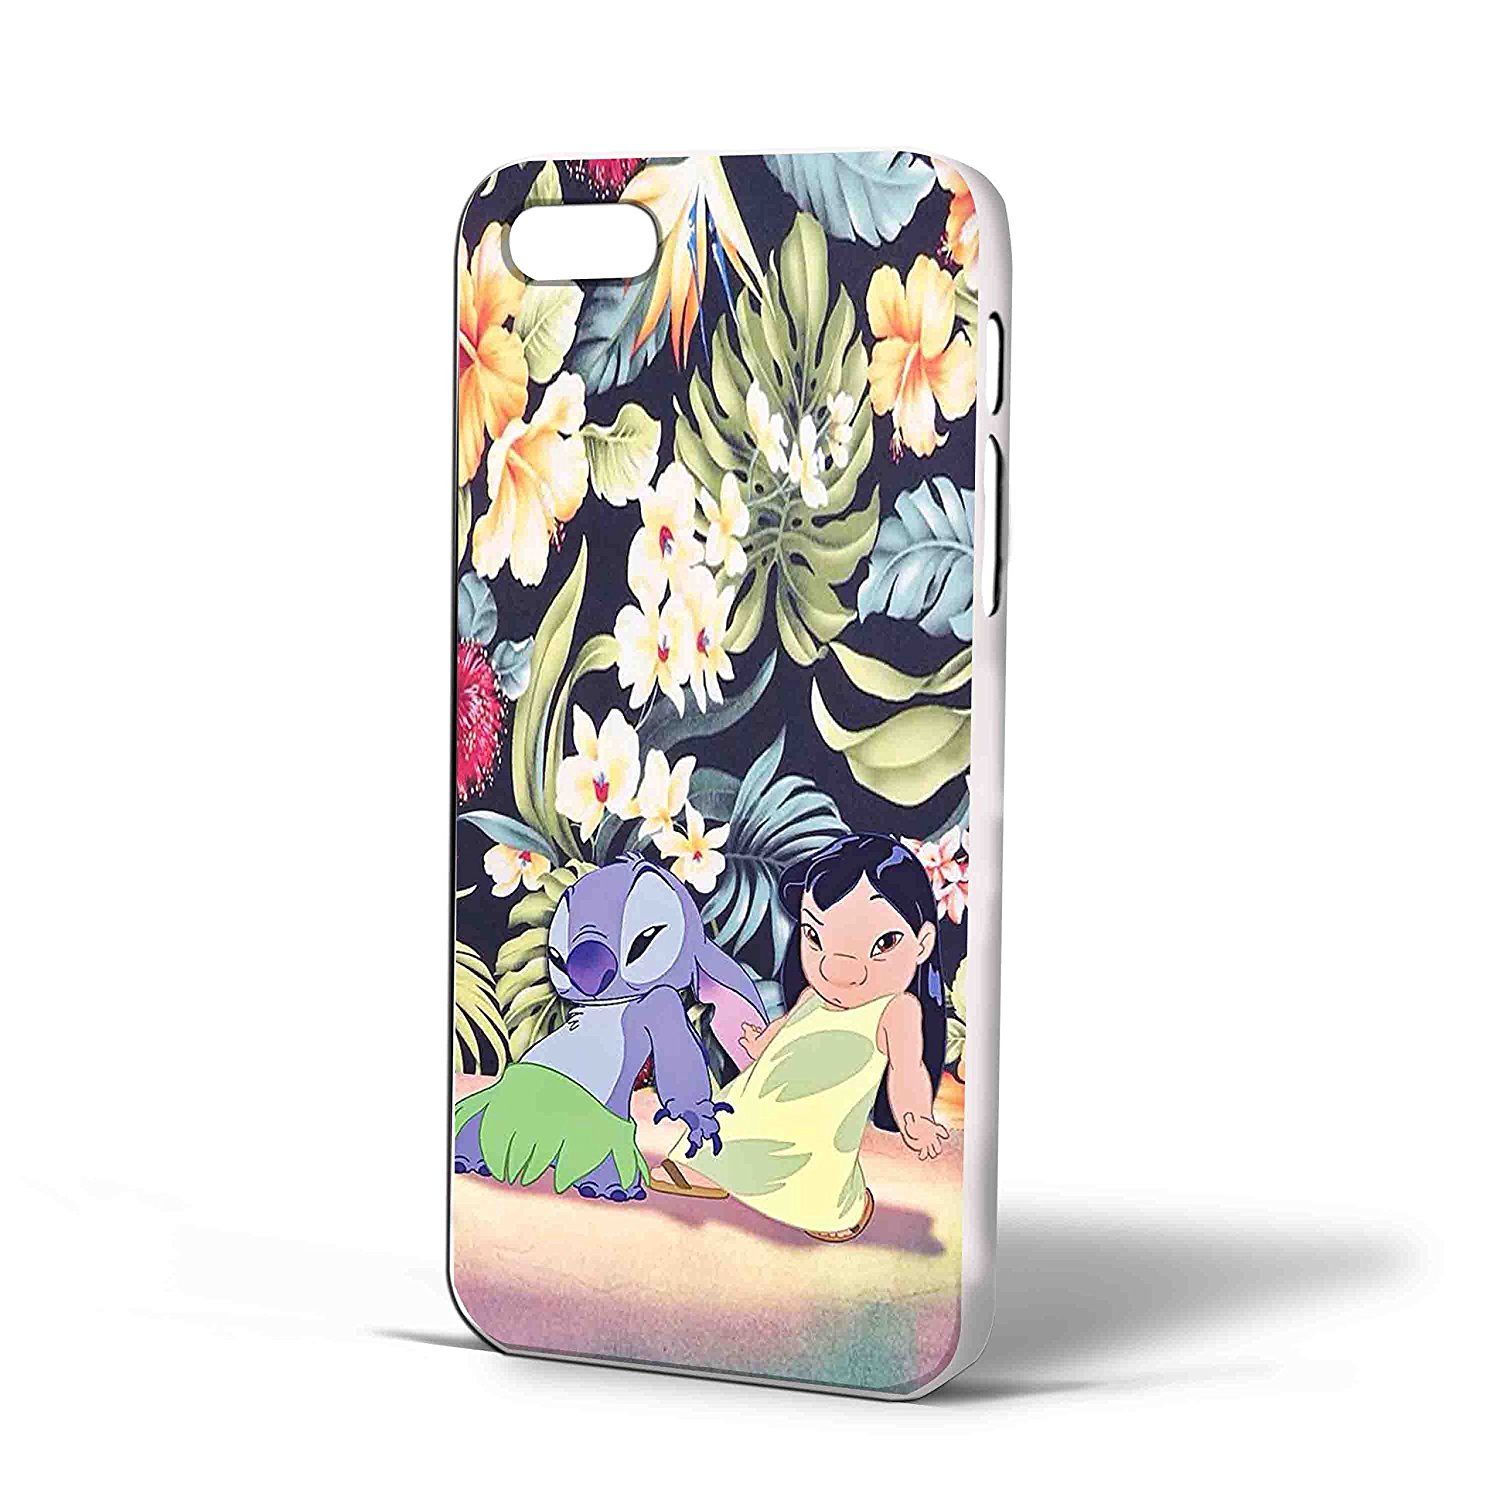 Ganma lilo and stitch dancing vintage Case For iPhone Case (Case For iPhone 6 White)